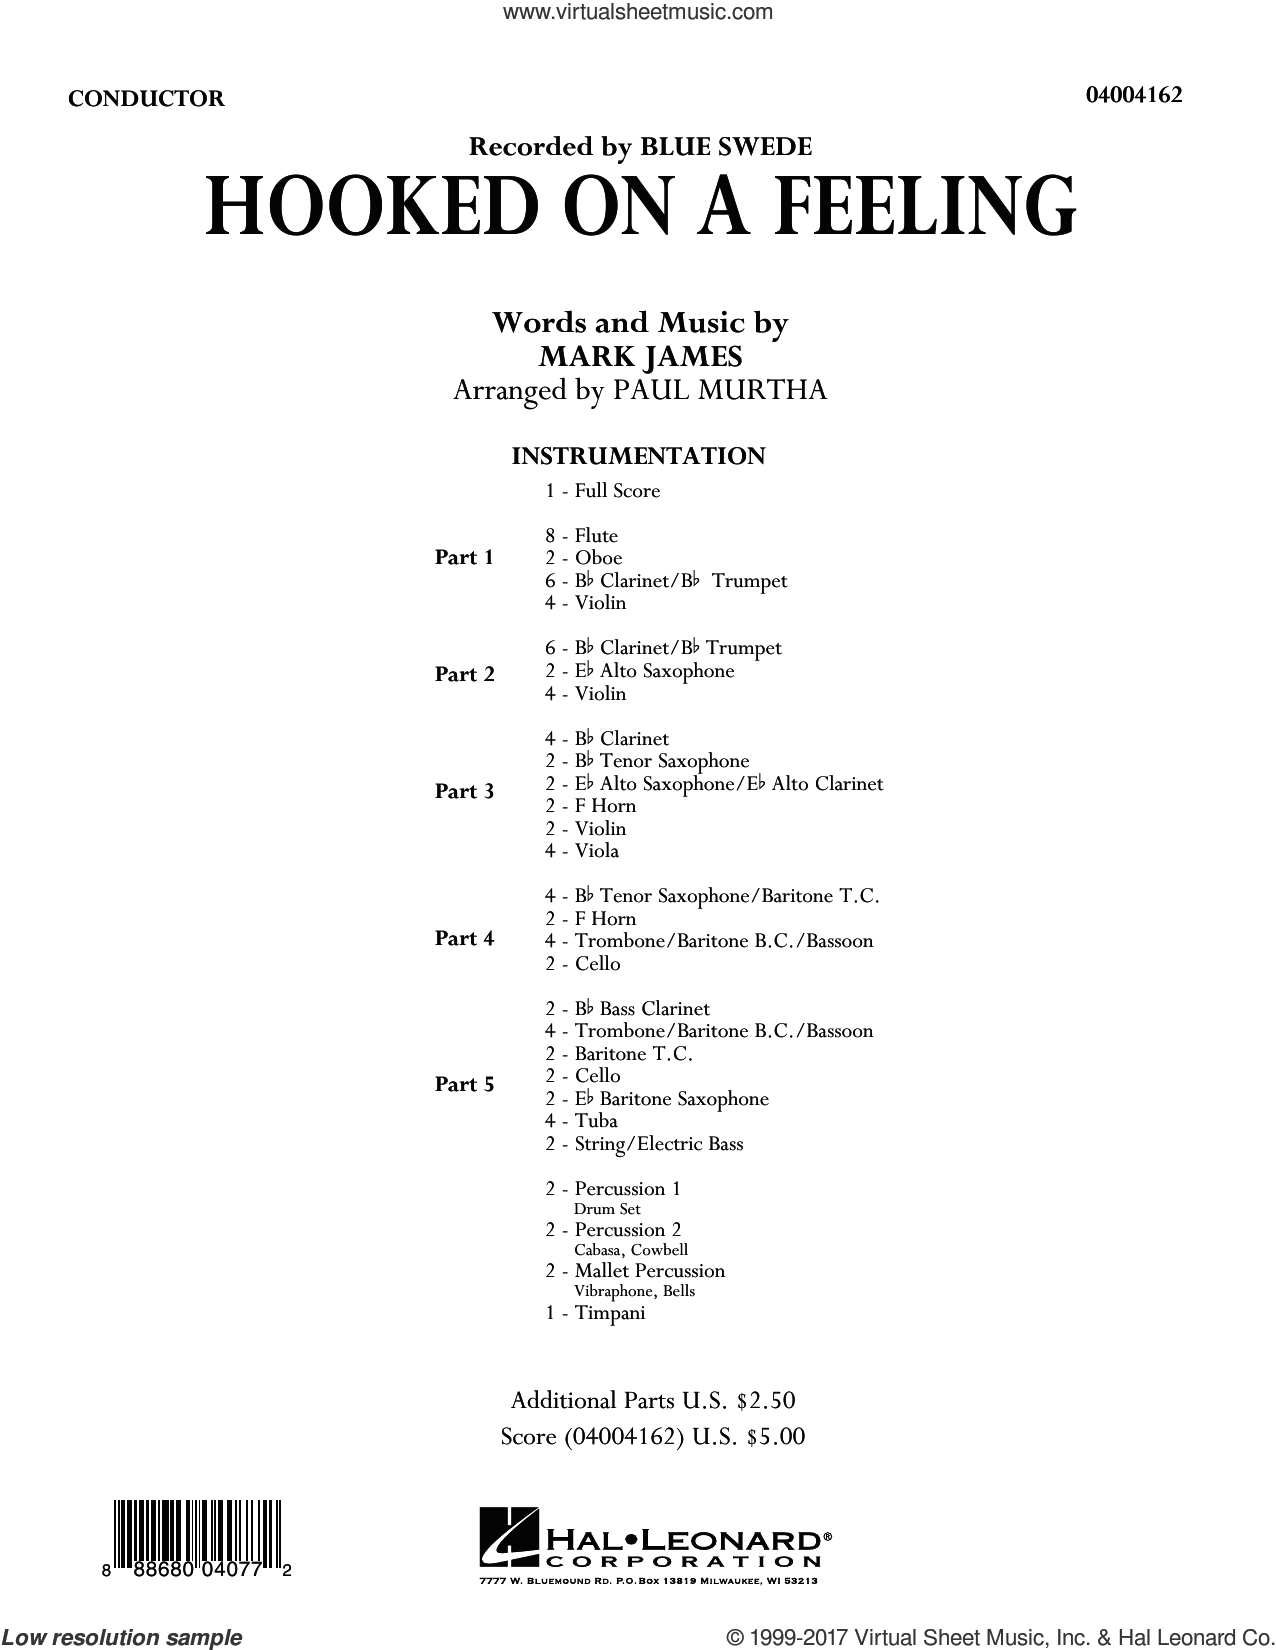 Hooked On A Feeling (COMPLETE) sheet music for concert band by Paul Murtha, B.J. Thomas, Blue Swede and Mark James, intermediate skill level